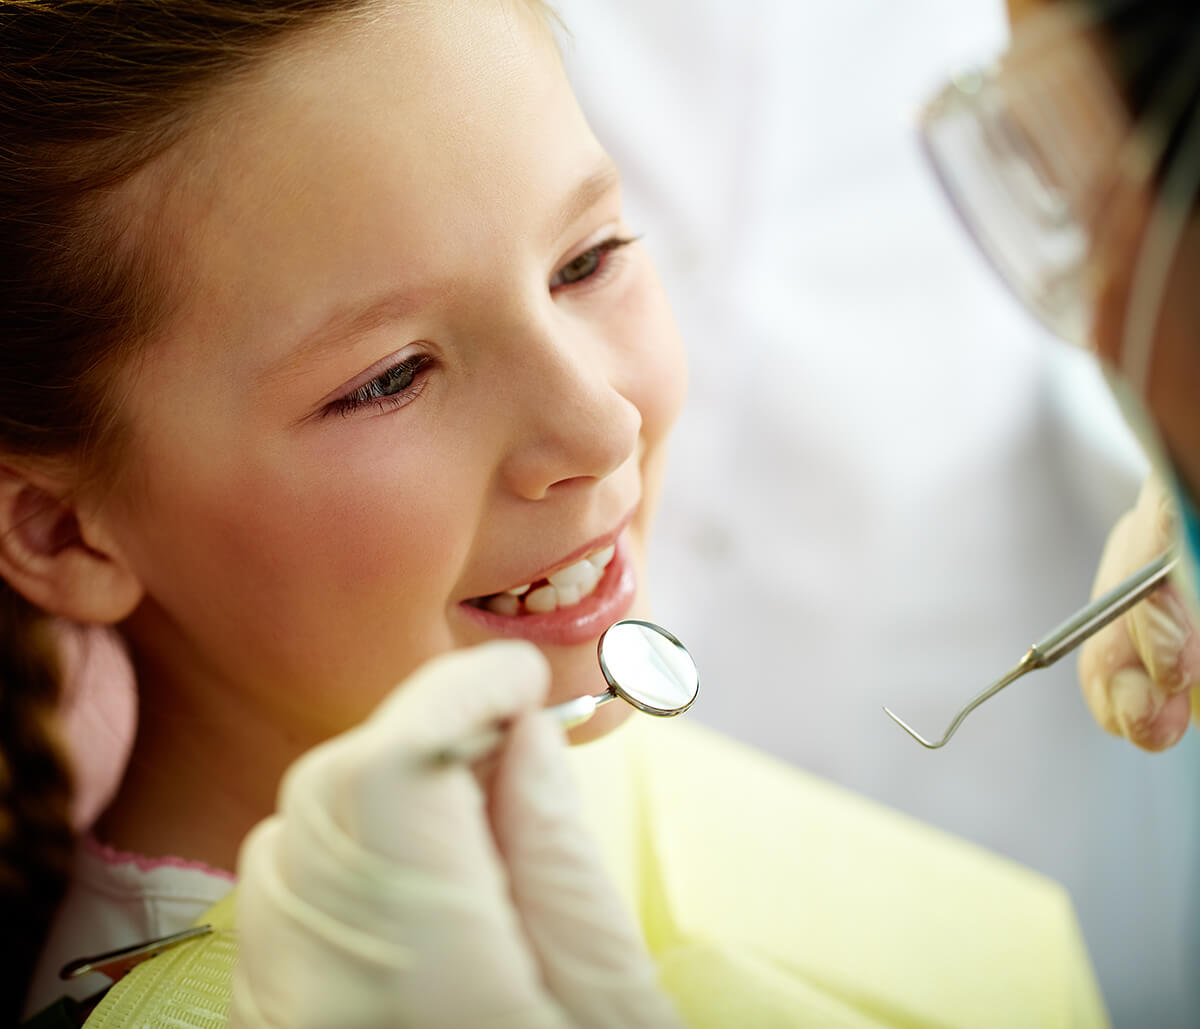 Kids Tooth Extractions at Triad Pediatric Dentistry in Greensboro NC Area